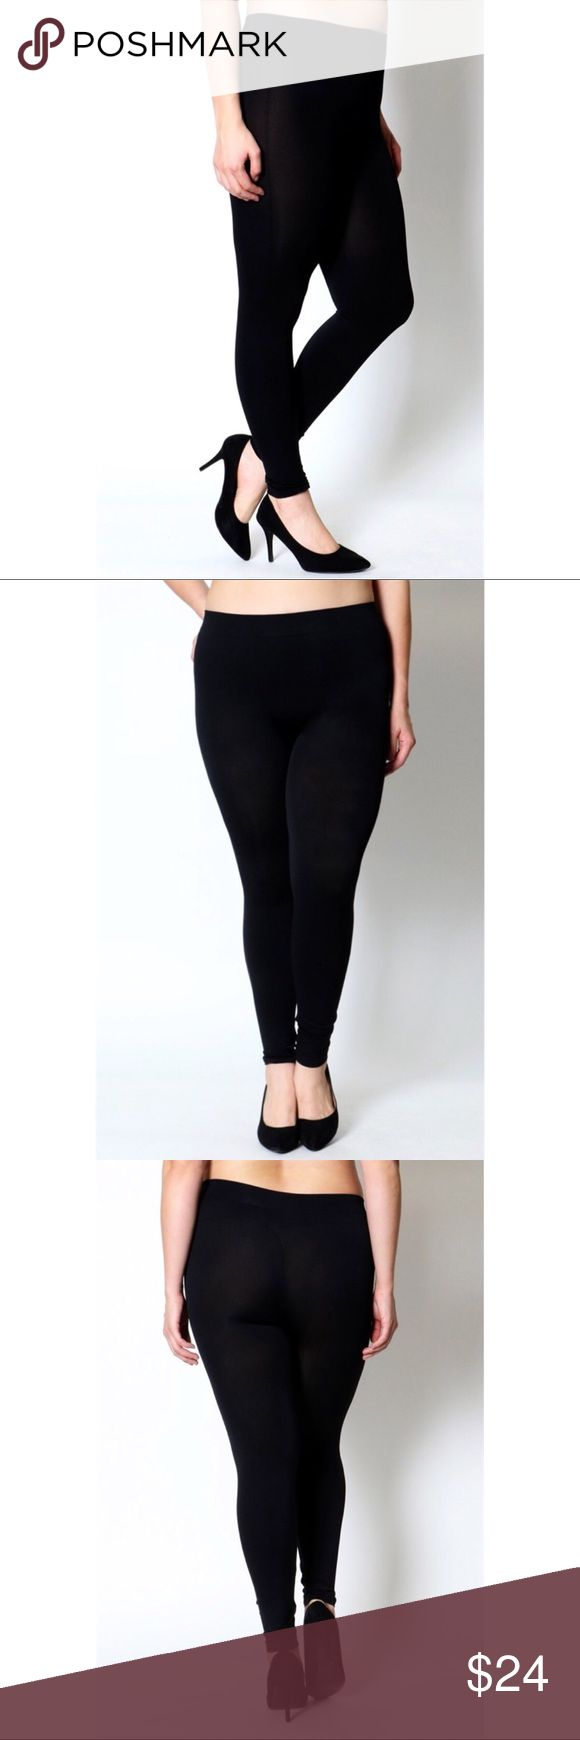 """Zenana Outfitters Black Seamless Leggings Plus 1X Zenana Outfitters Black Seamless Leggings Plus 1X.  Tag says OS but they fit 1X/2X. Waist 27"""" Inseam 24.5"""" Zenana Outfitters Pants Leggings"""